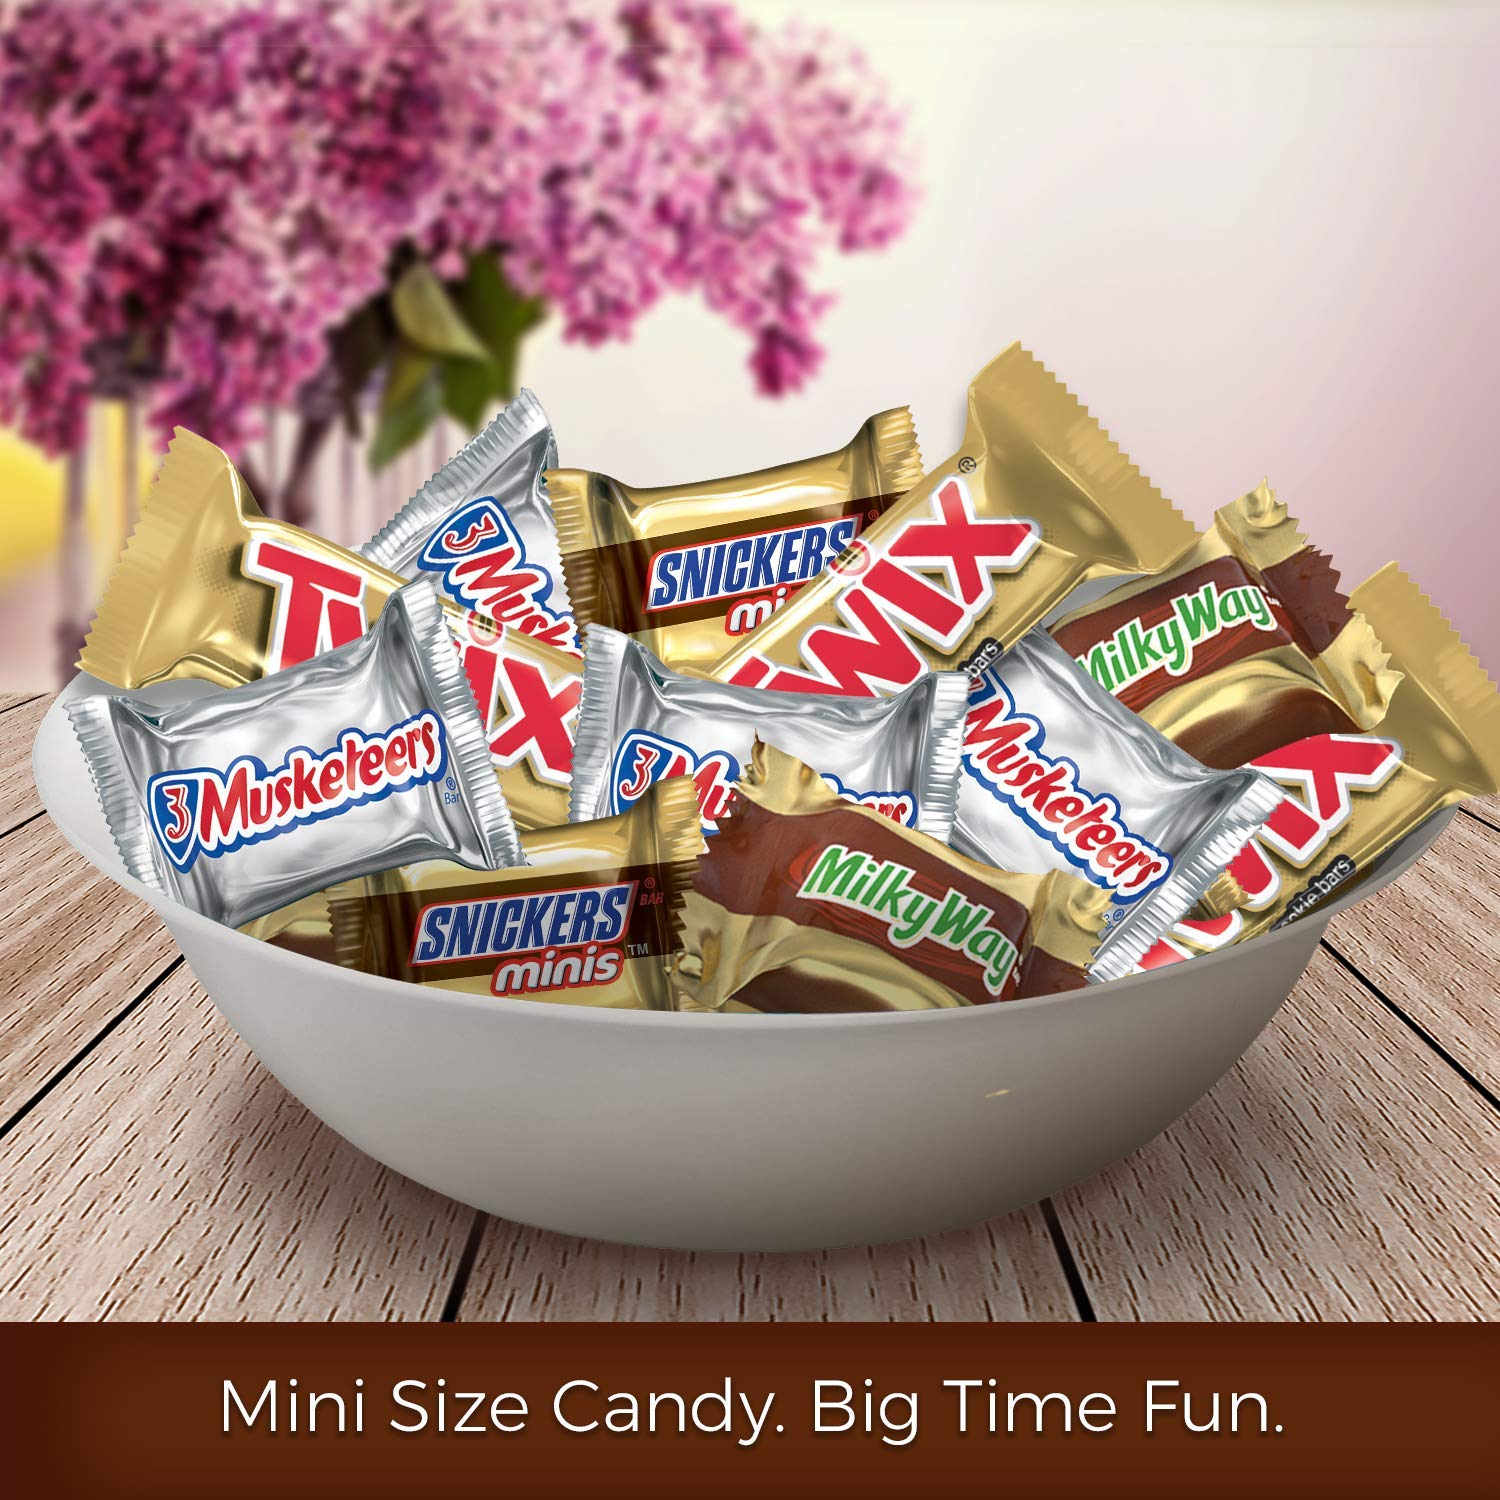 SNICKERS, TWIX, 3 MUSKETEERS & MILKY WAY Minis Size Easter Candy Variety Mix, 240 Pieces, 3 Pack